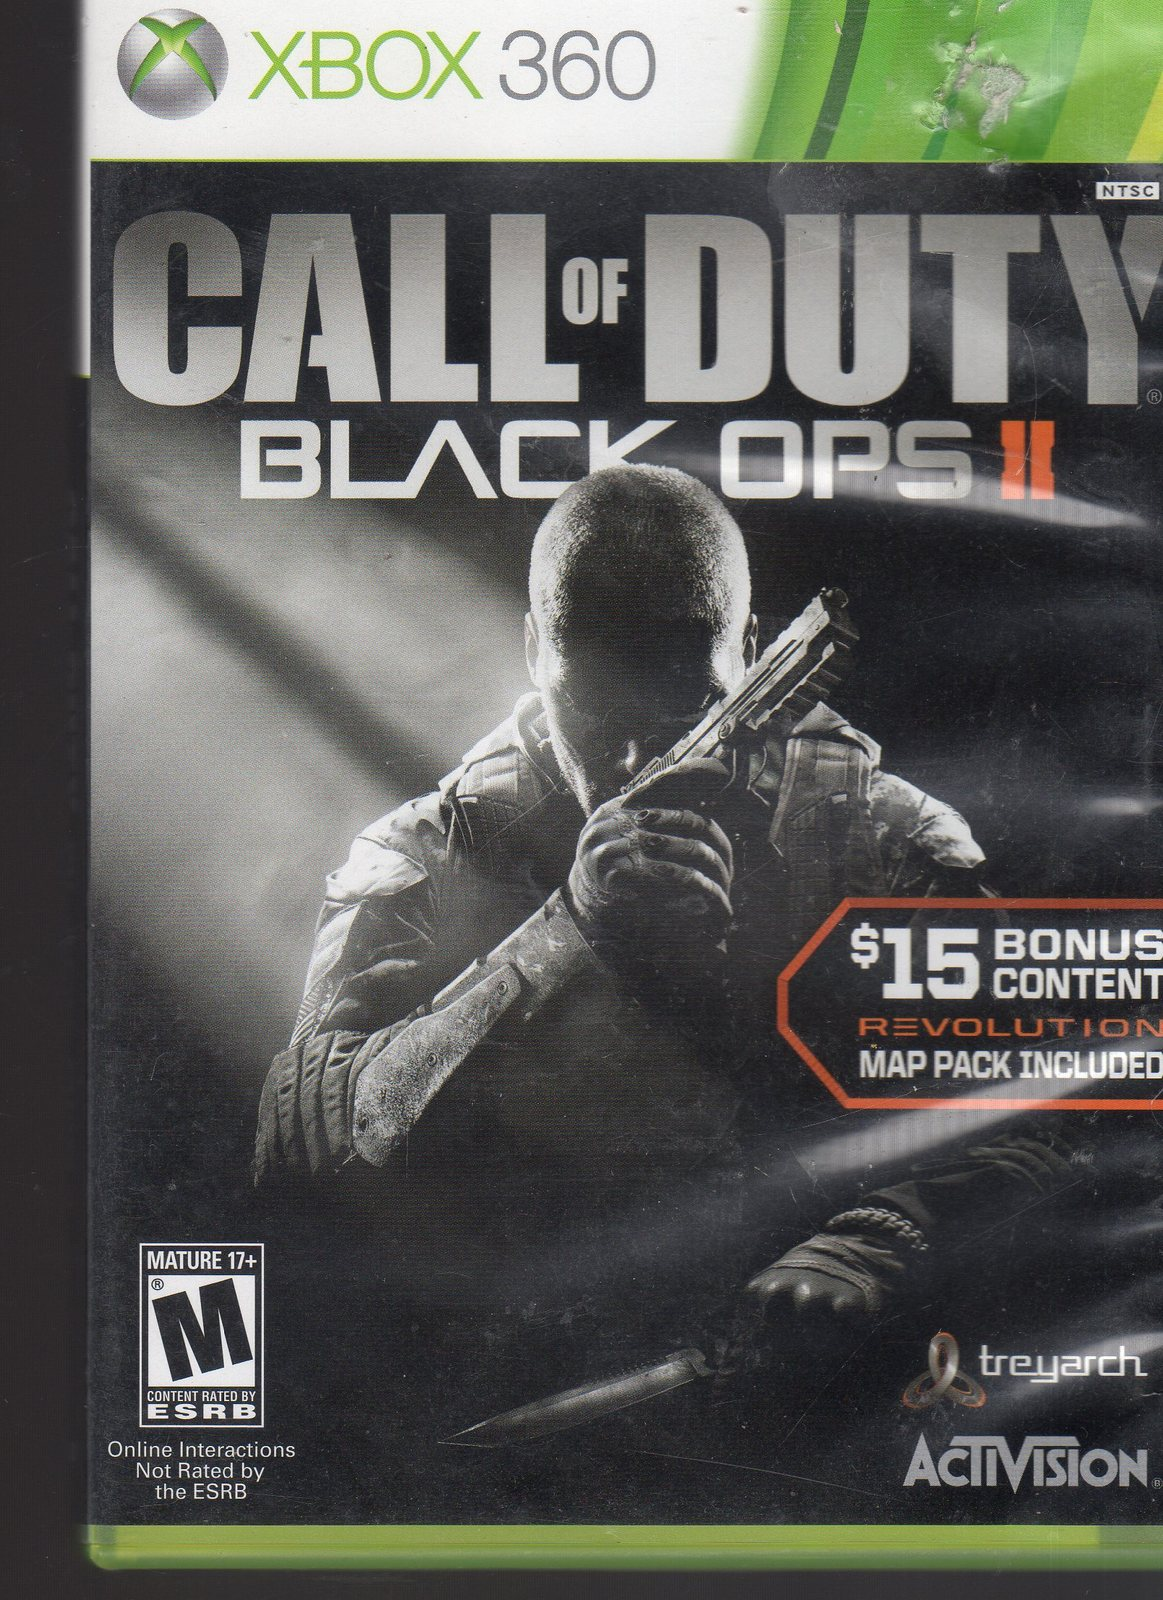 Xbox 360 - Call Of Duty Black Ops II